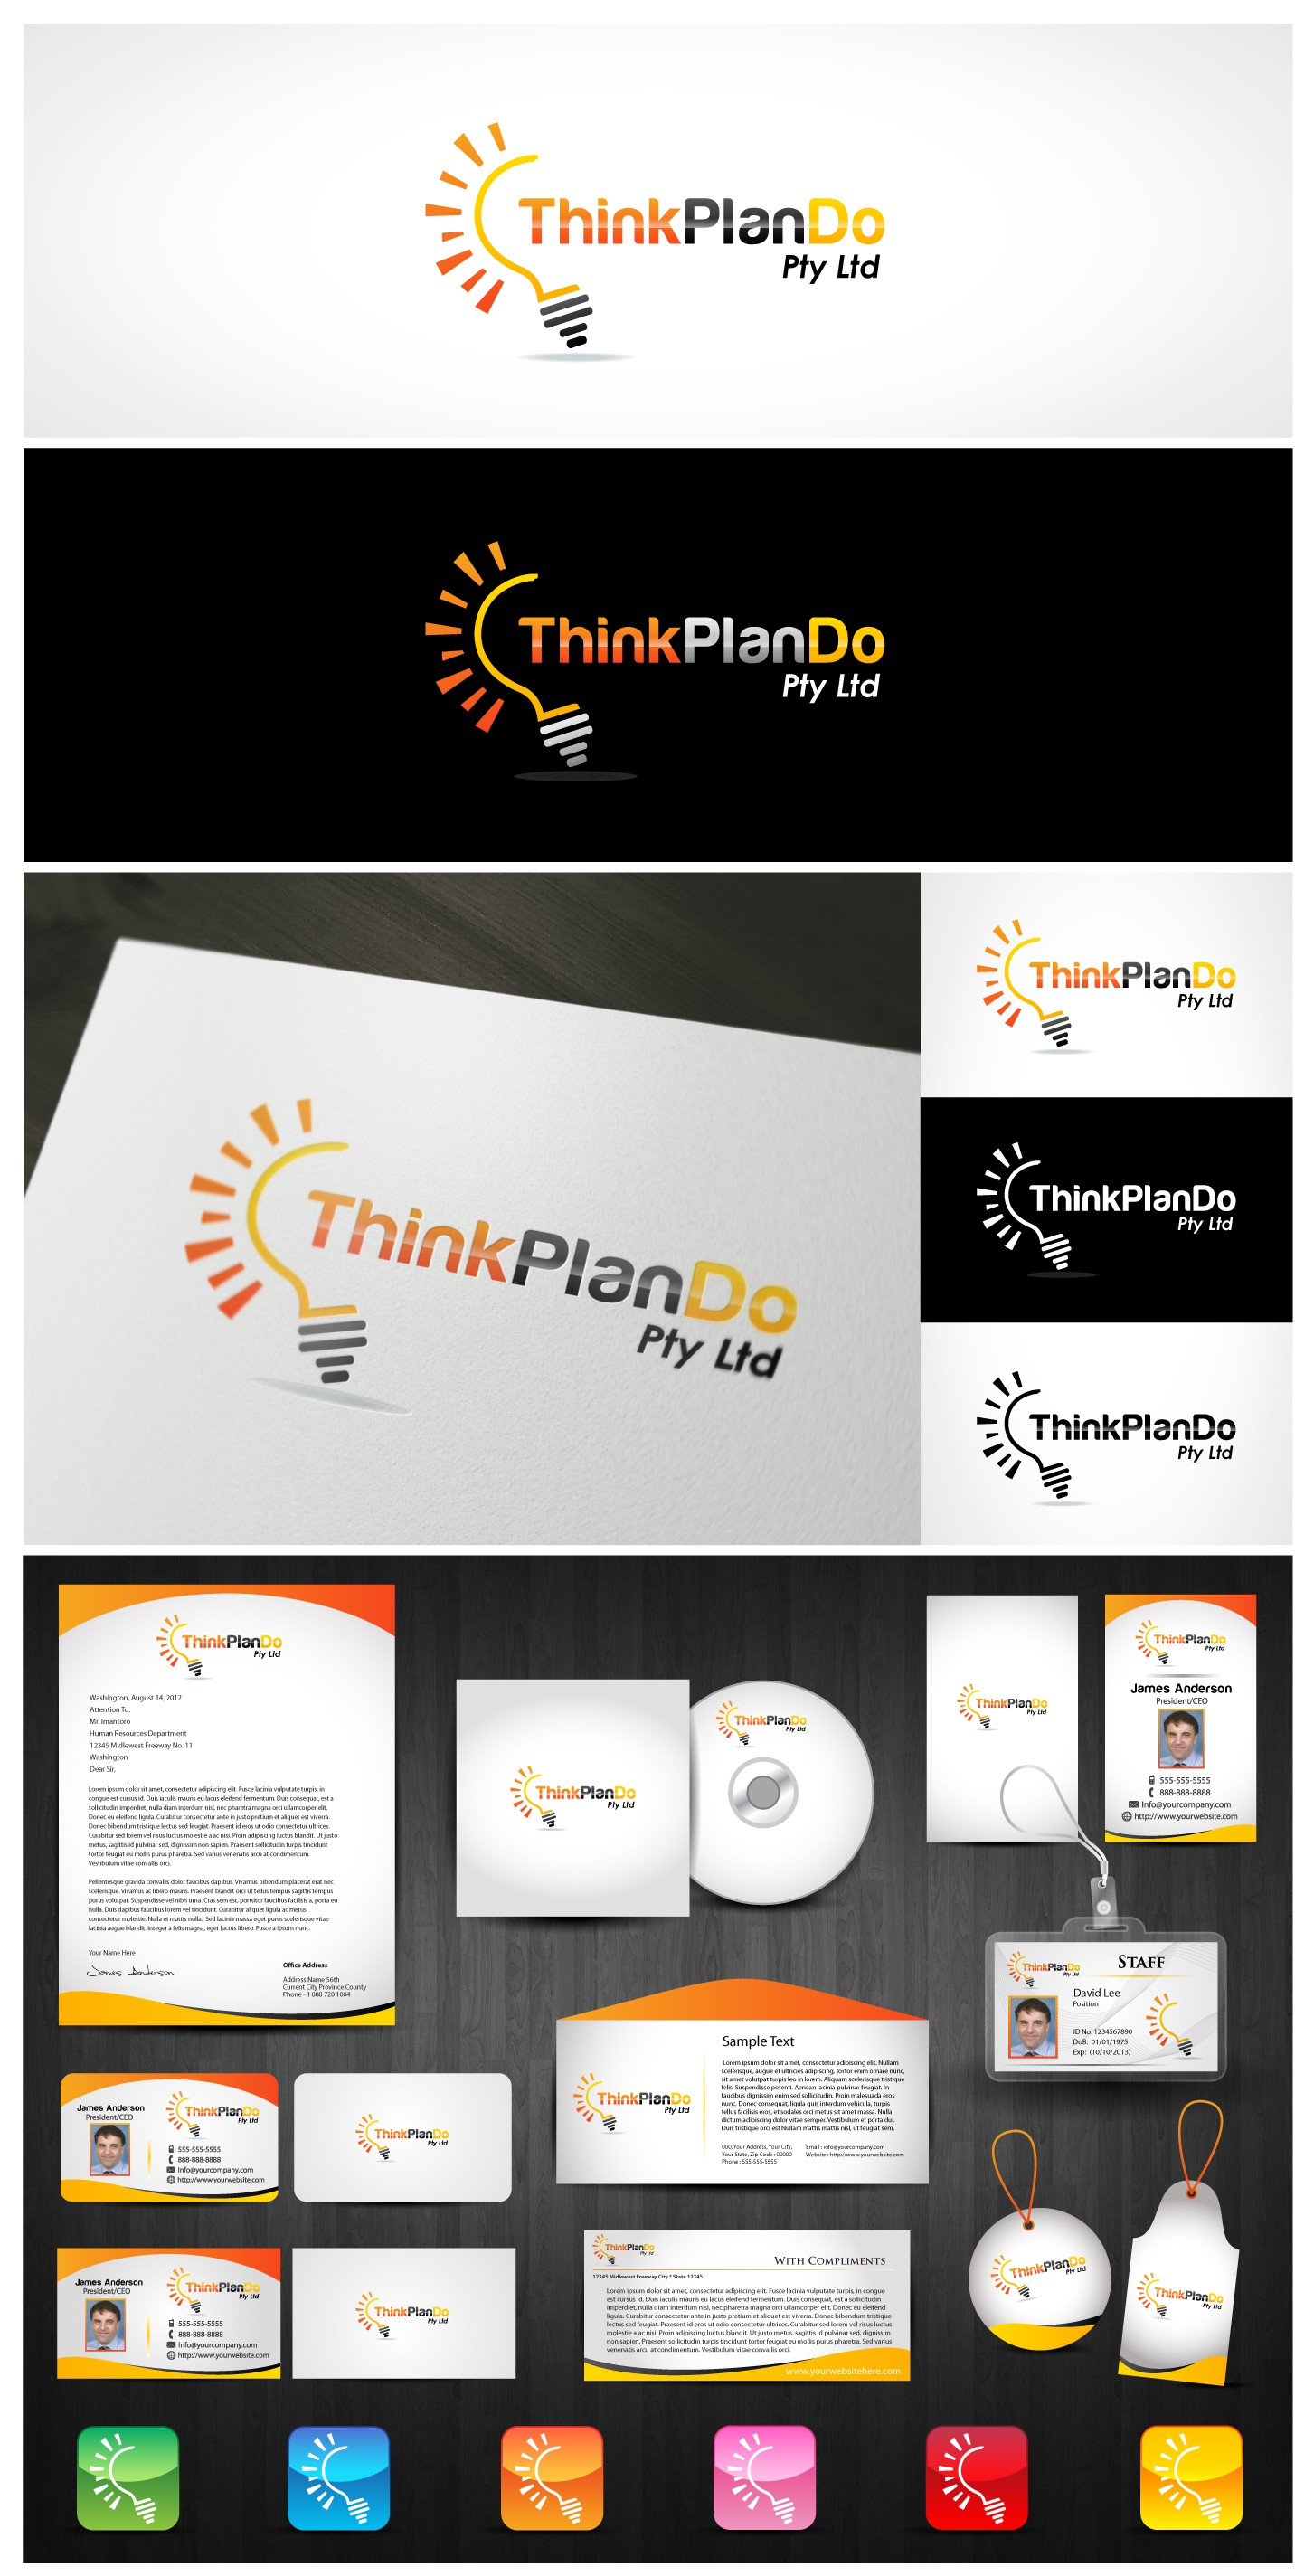 Create the next logo for Think Plan Do Pty Ltd